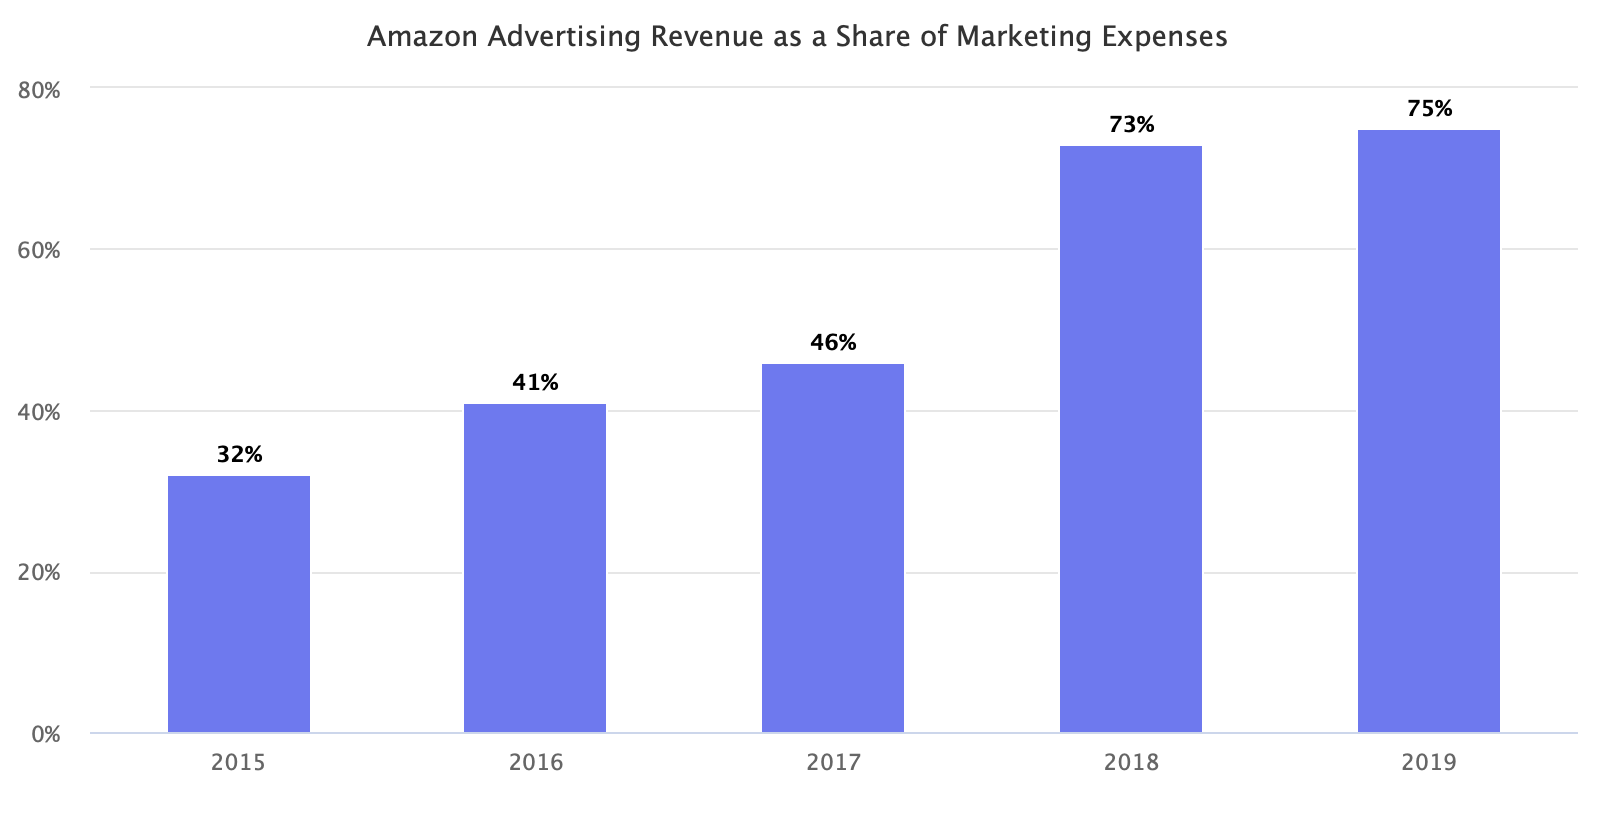 Amazon Advertising Revenue as a Share of Marketing Expenses